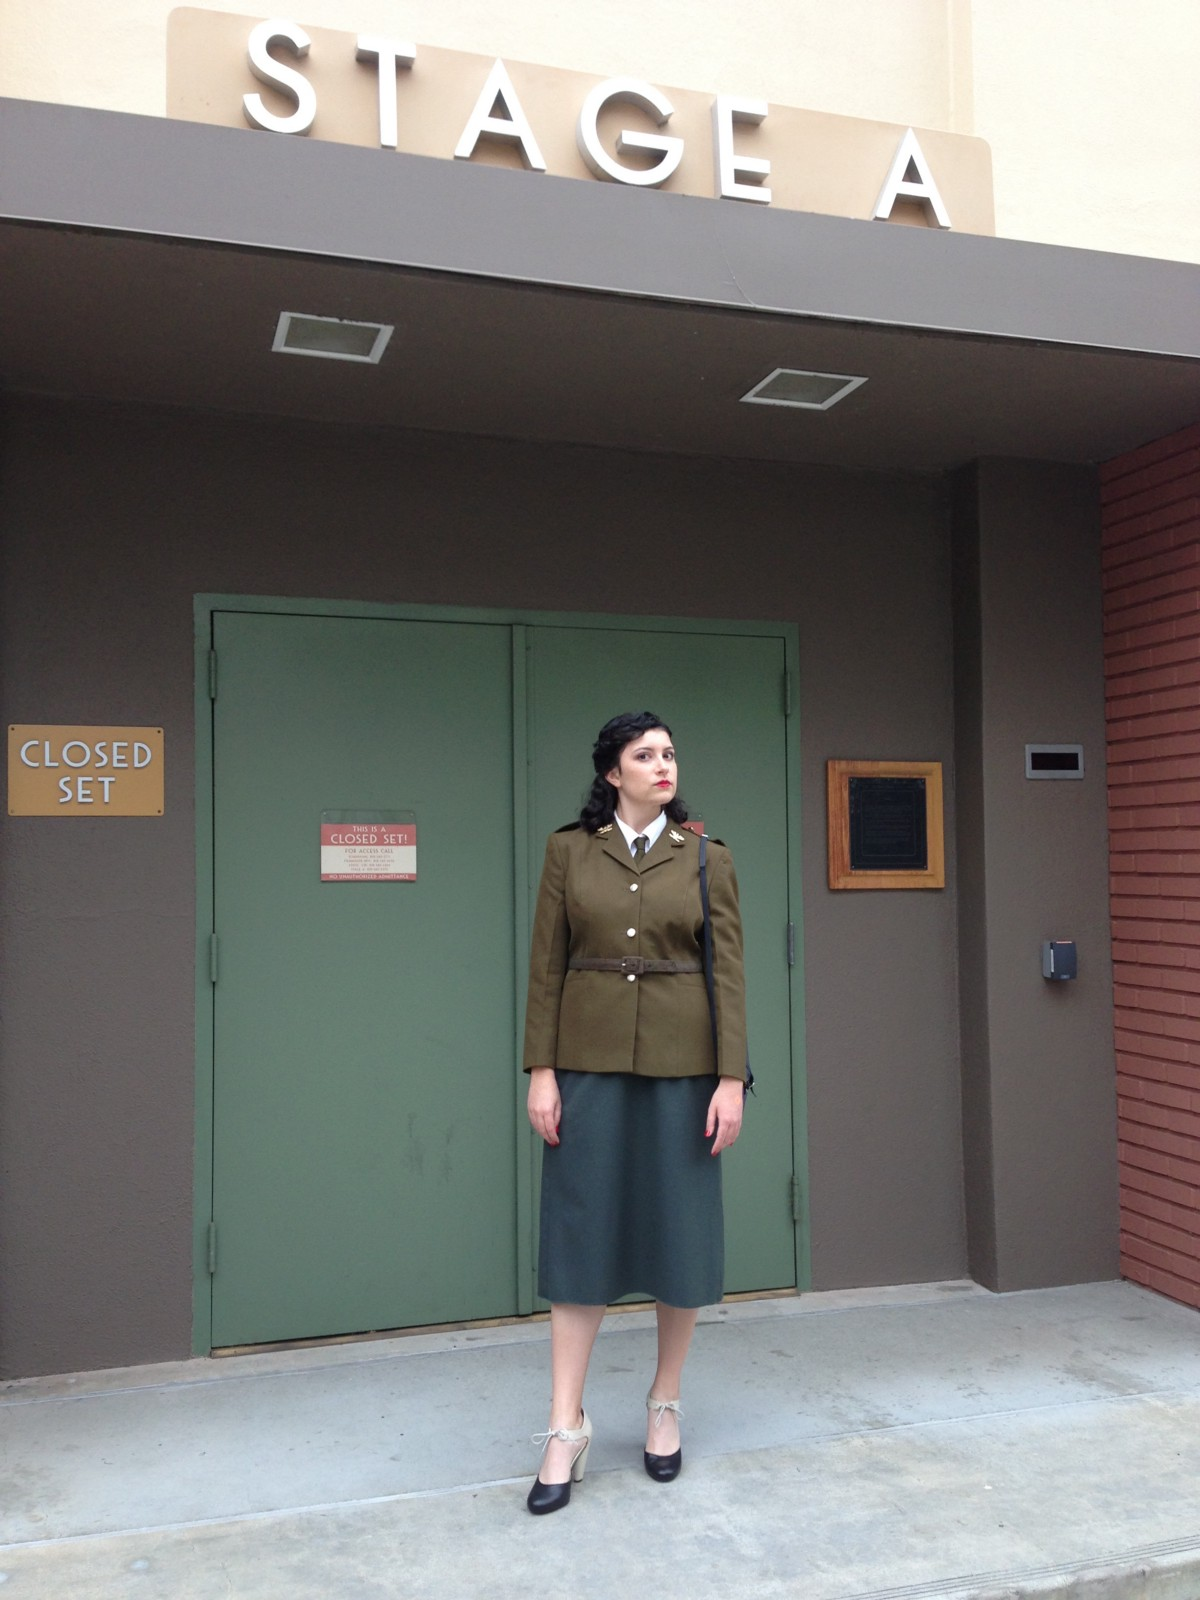 three years ago i dressed up as agent carter to enter the disney studio lot halloween costume contest id spent the previous week scouring vintage stores